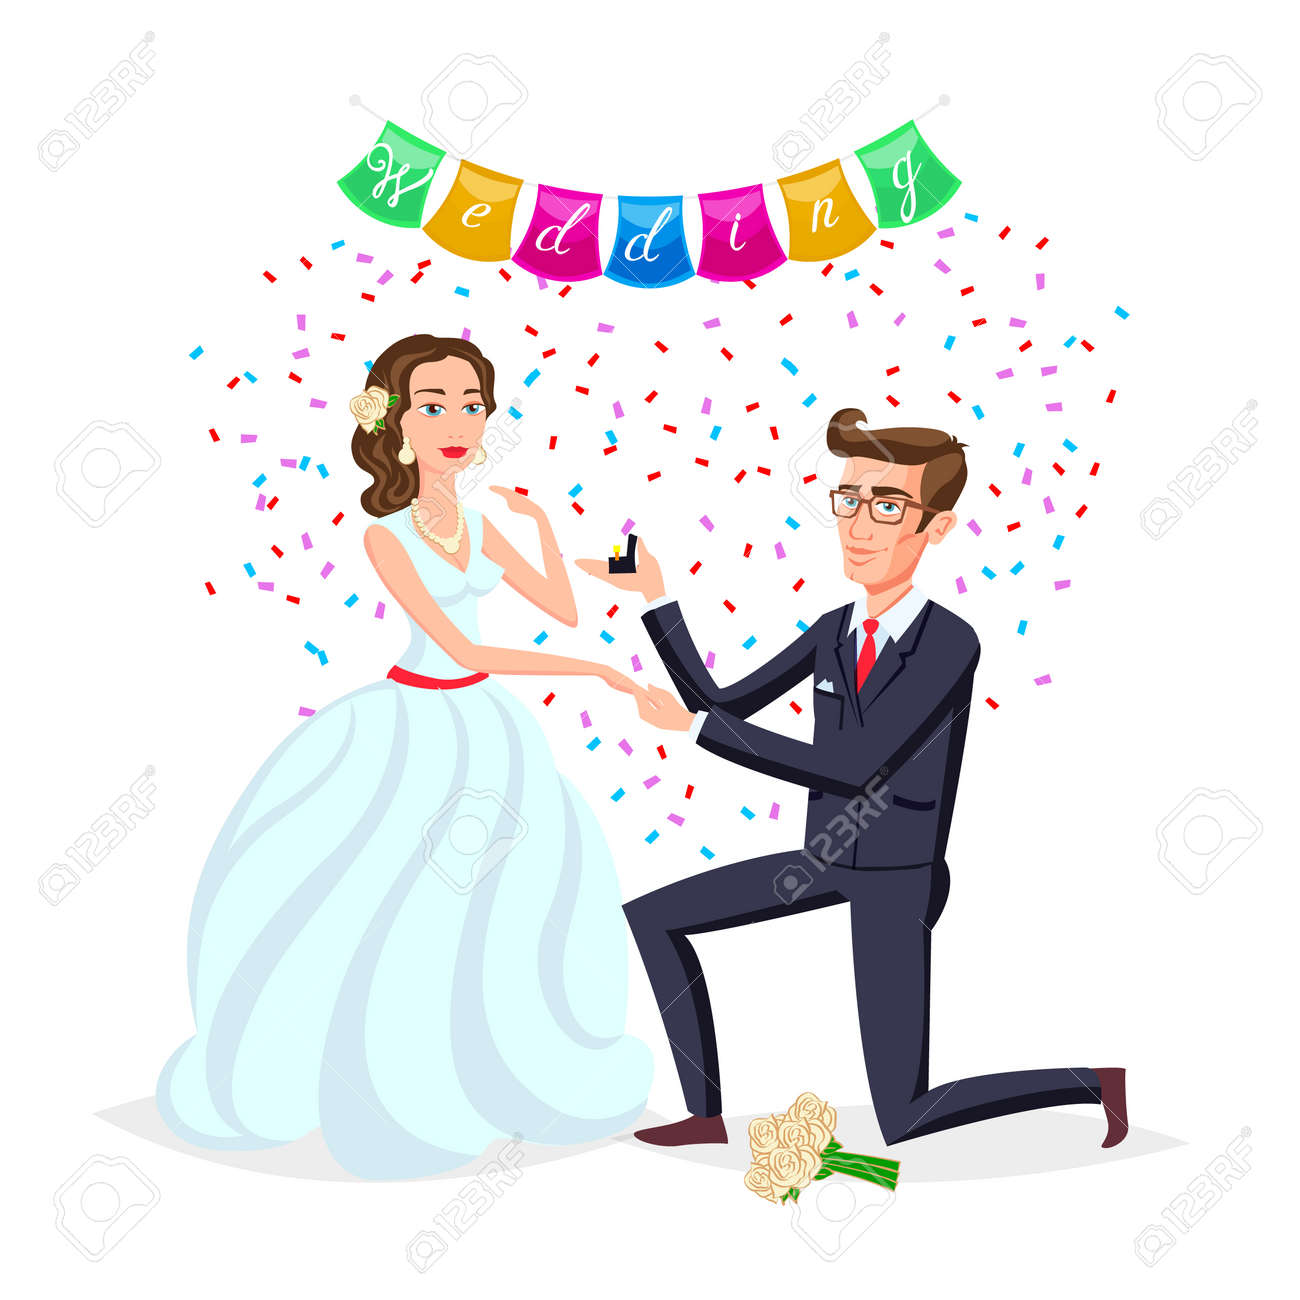 Bride And Groom As Love Wedding Couple Illustration Cartoon Royalty Free Cliparts Vectors And Stock Illustration Image 82513333